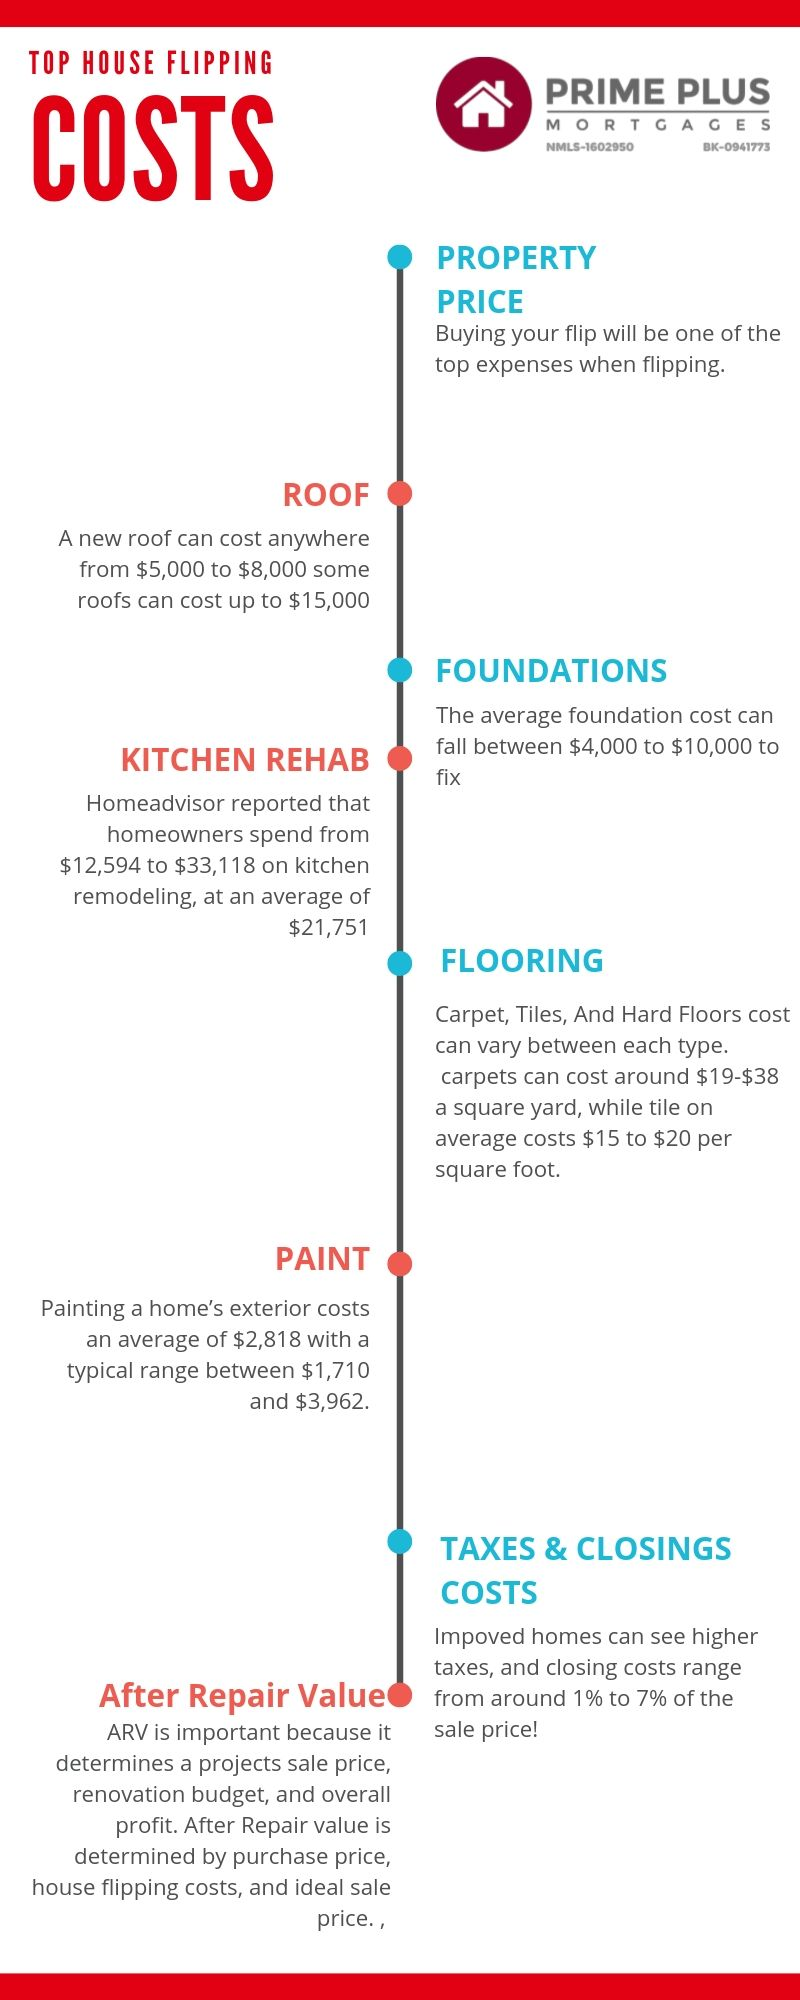 top house flipping cost infographic